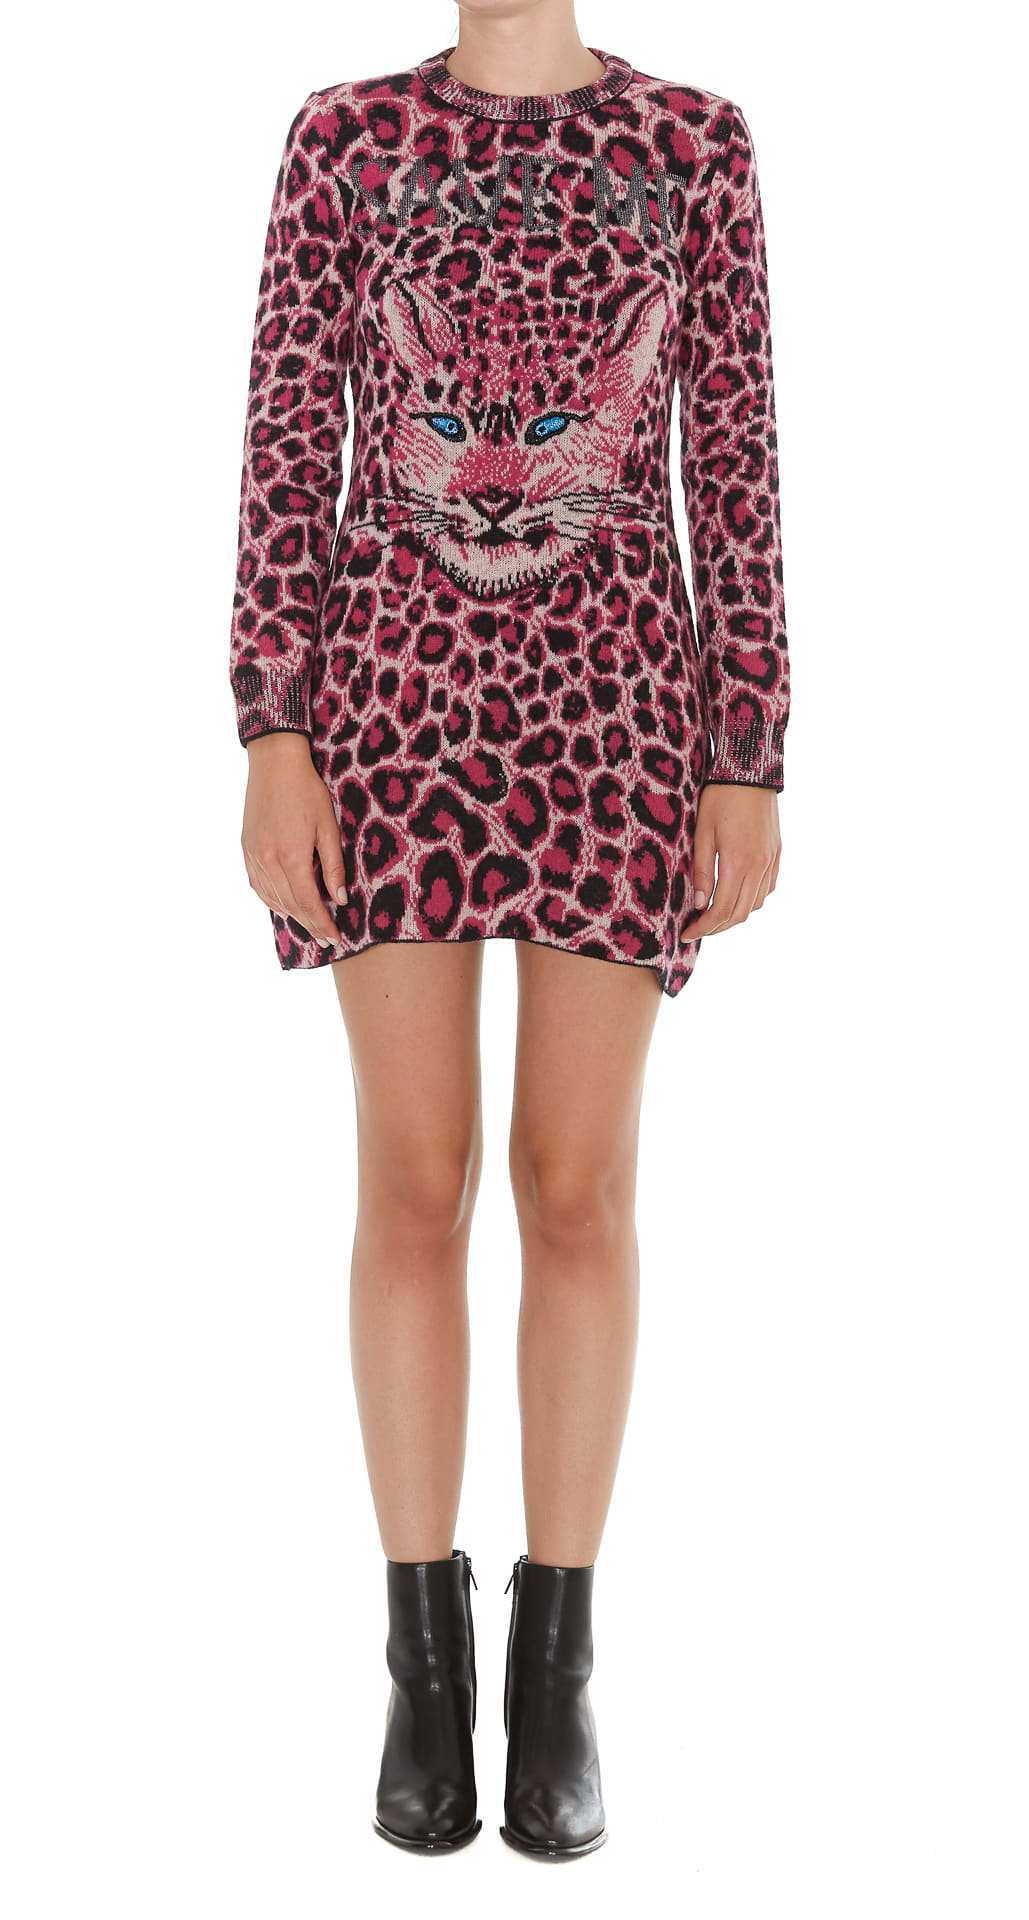 Alberta Ferretti Love Me Wild Dress